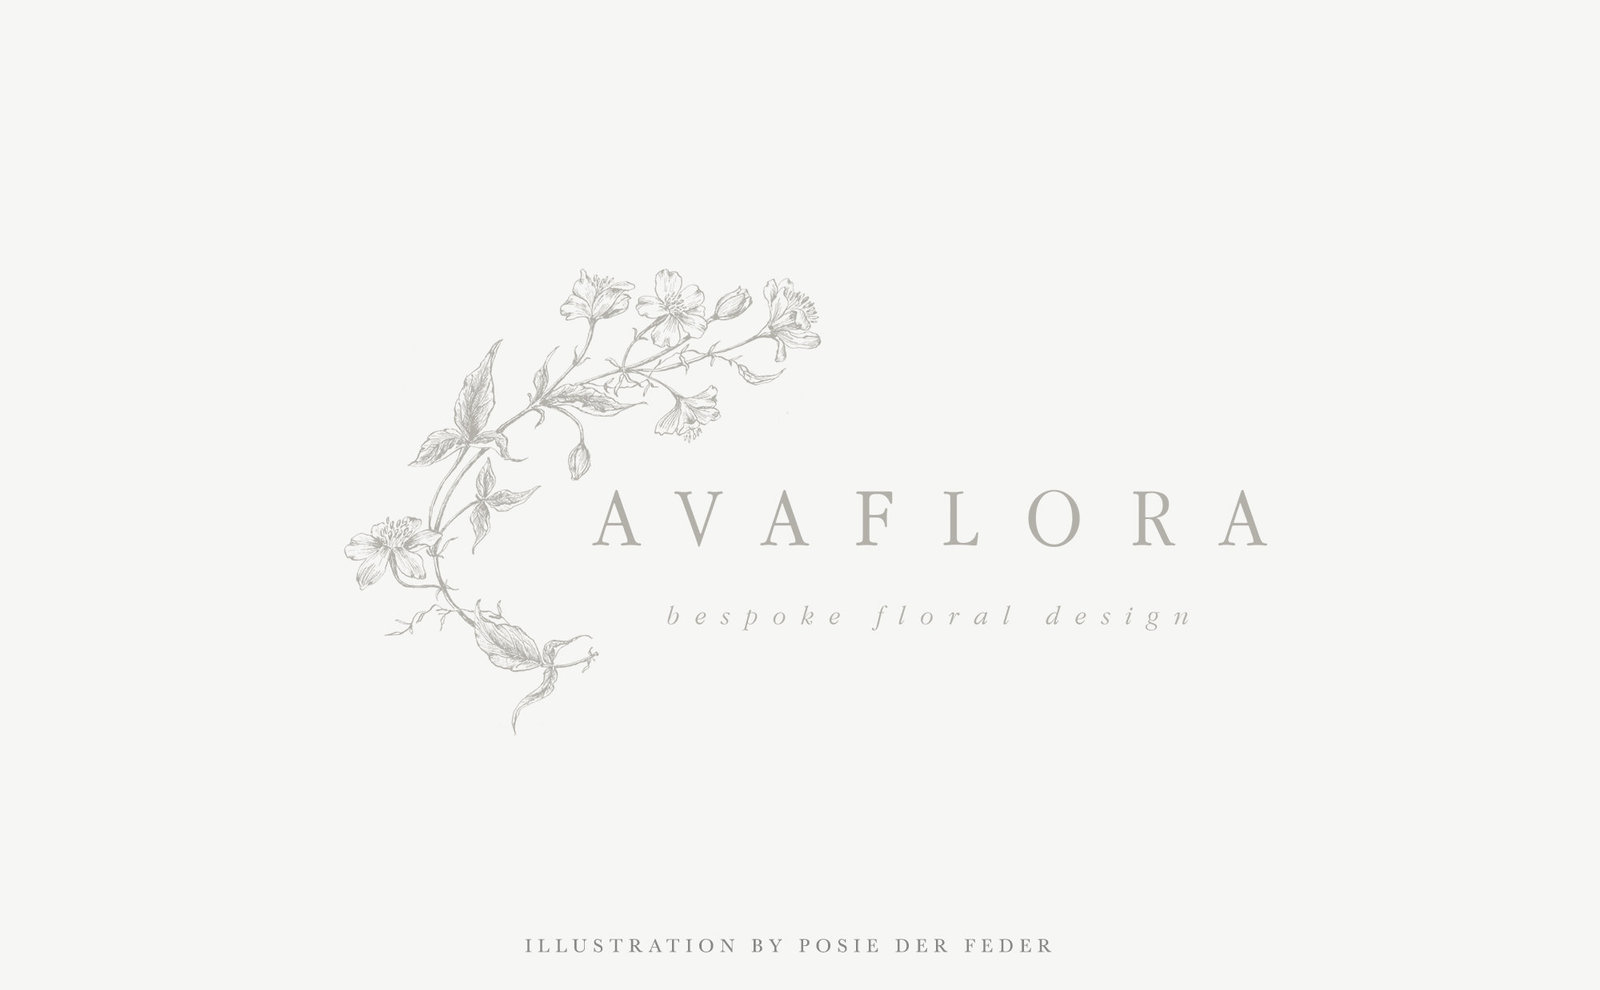 brand-design-florist-logo-branding-for-creatives-bespoke-floral-design-new-york-avaflora-logo